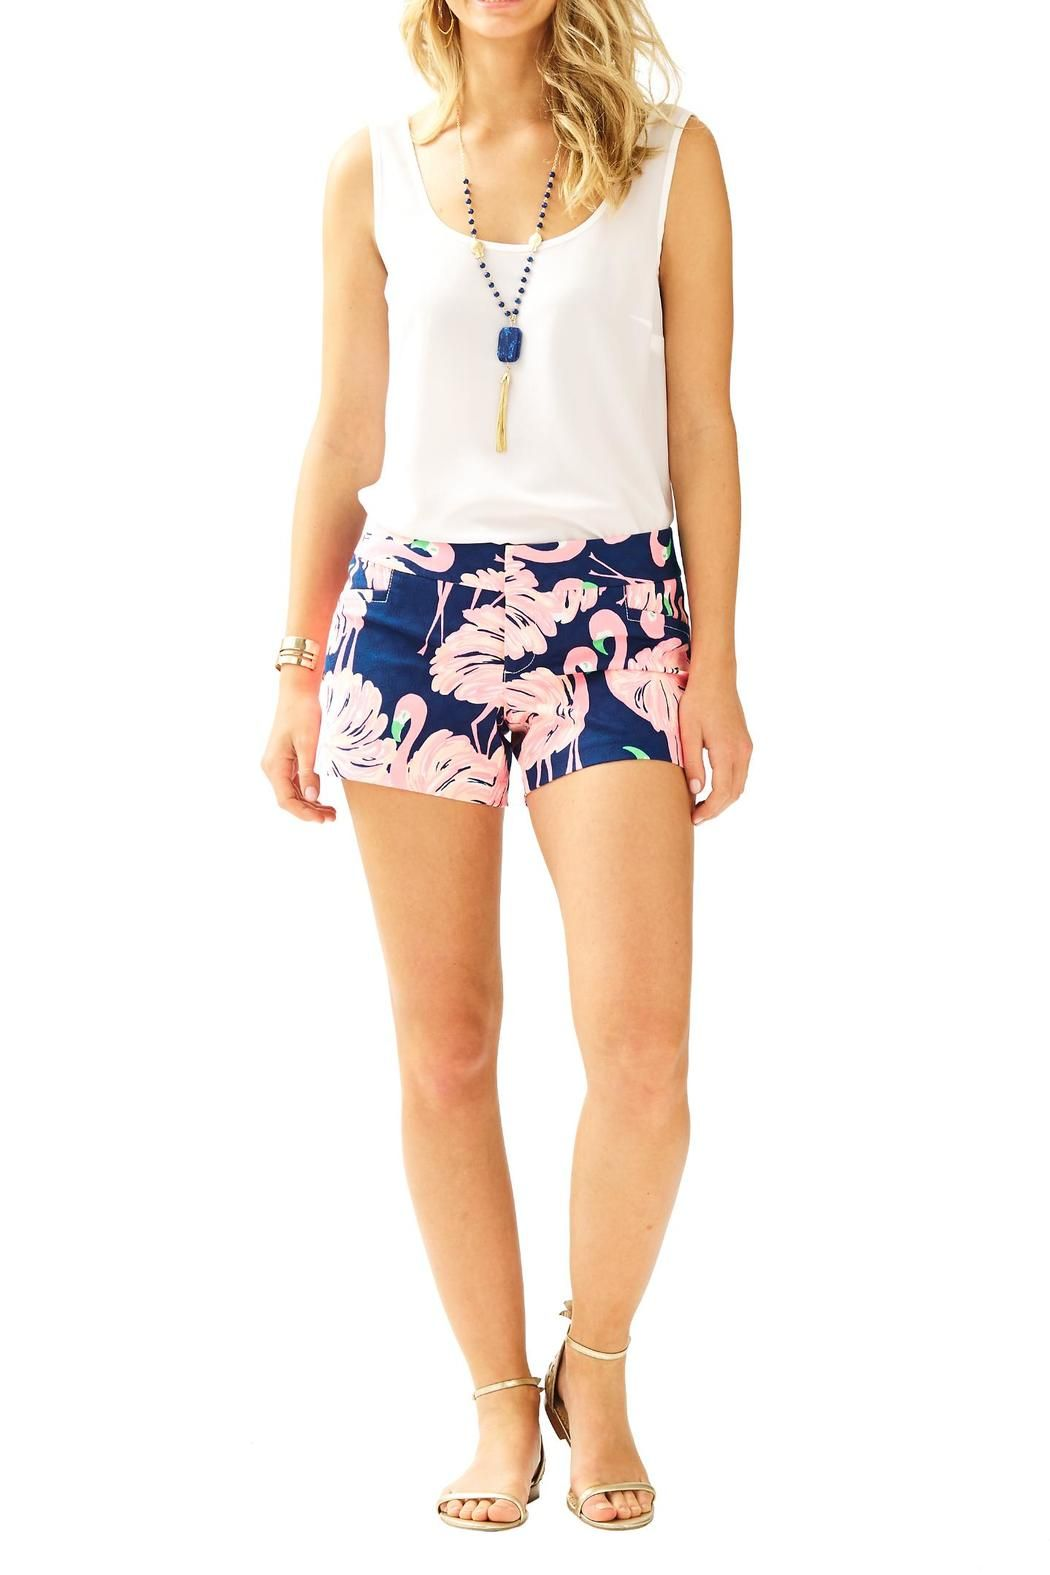 "We wanted to give you shorts that you can dress up or down. That's why we made you the Ellie short. Clean lines, fun patterns make for the great bottoms that can be worn for more casual days, or festive nights. 4"" inseam  with hook and bar closure. Faux front pockets and back welt pockets.    Ellie Short by Lilly Pulitzer. Clothing - Shorts Sandestin Golf and Beach Resort, Florida"